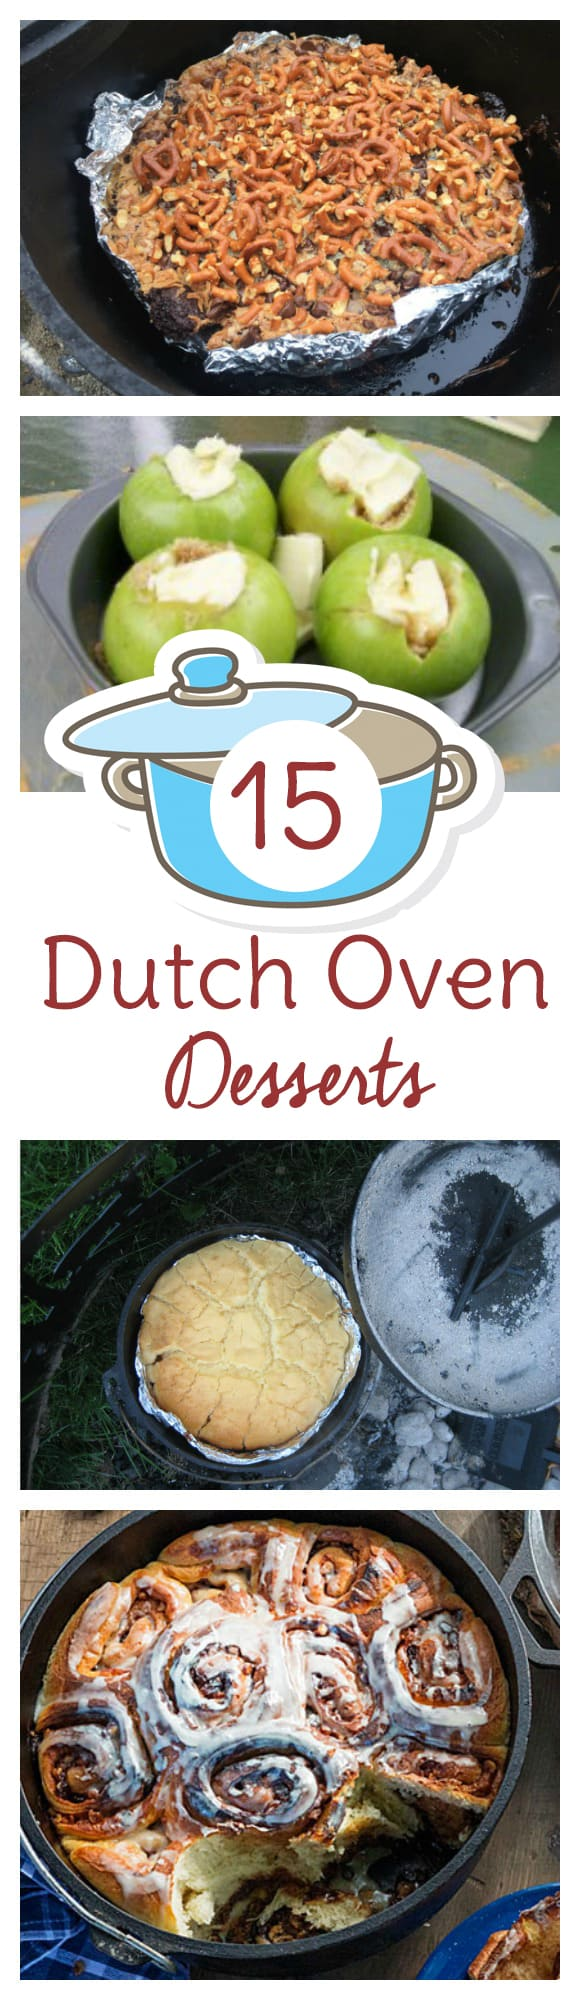 Dutch Oven Desserts To Make While Camping 15 Recipes